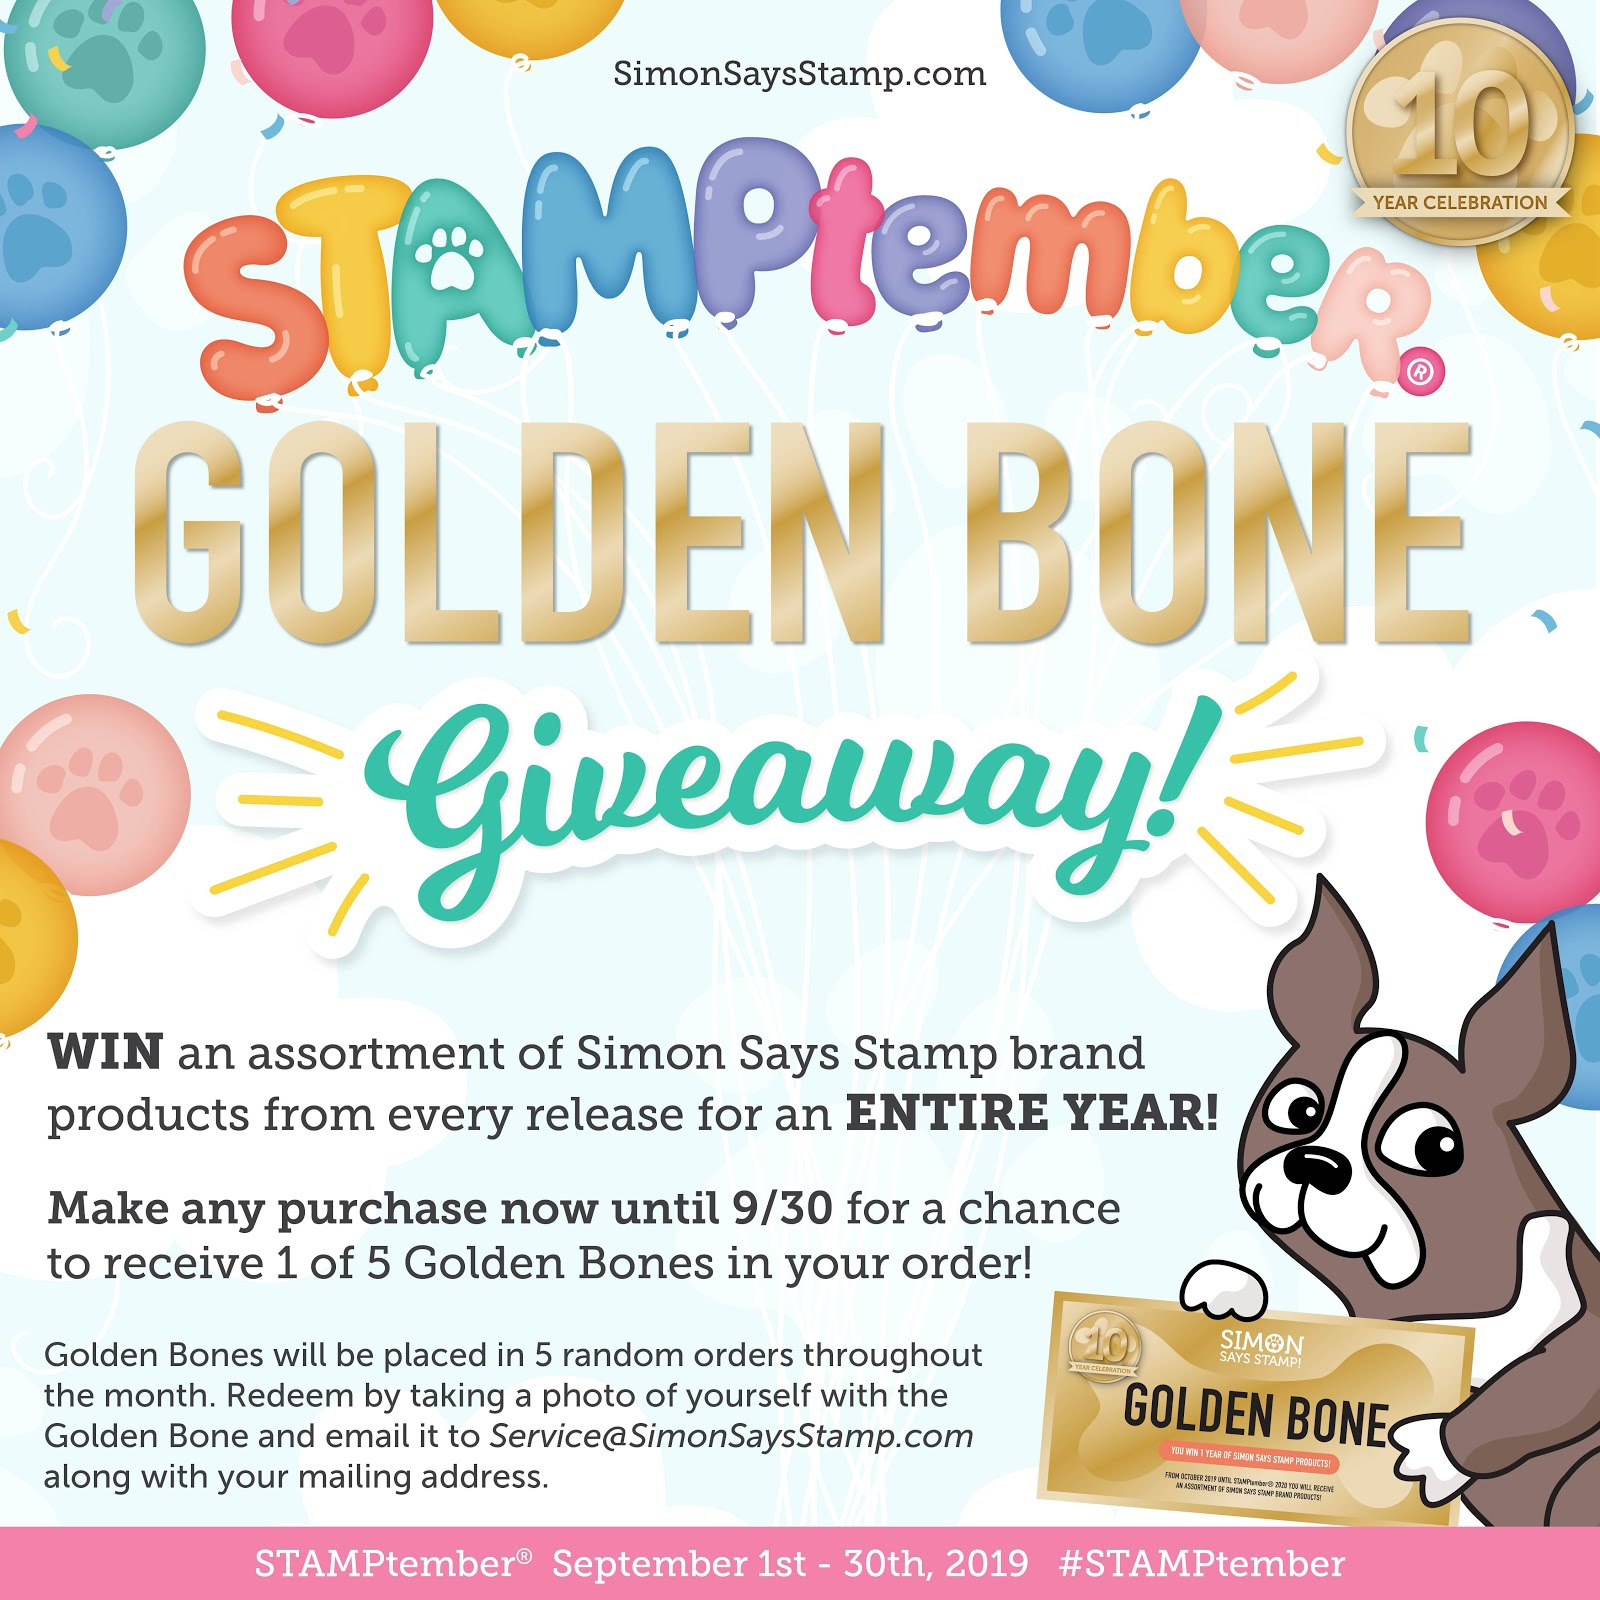 Will YOU win a Golden Bone????